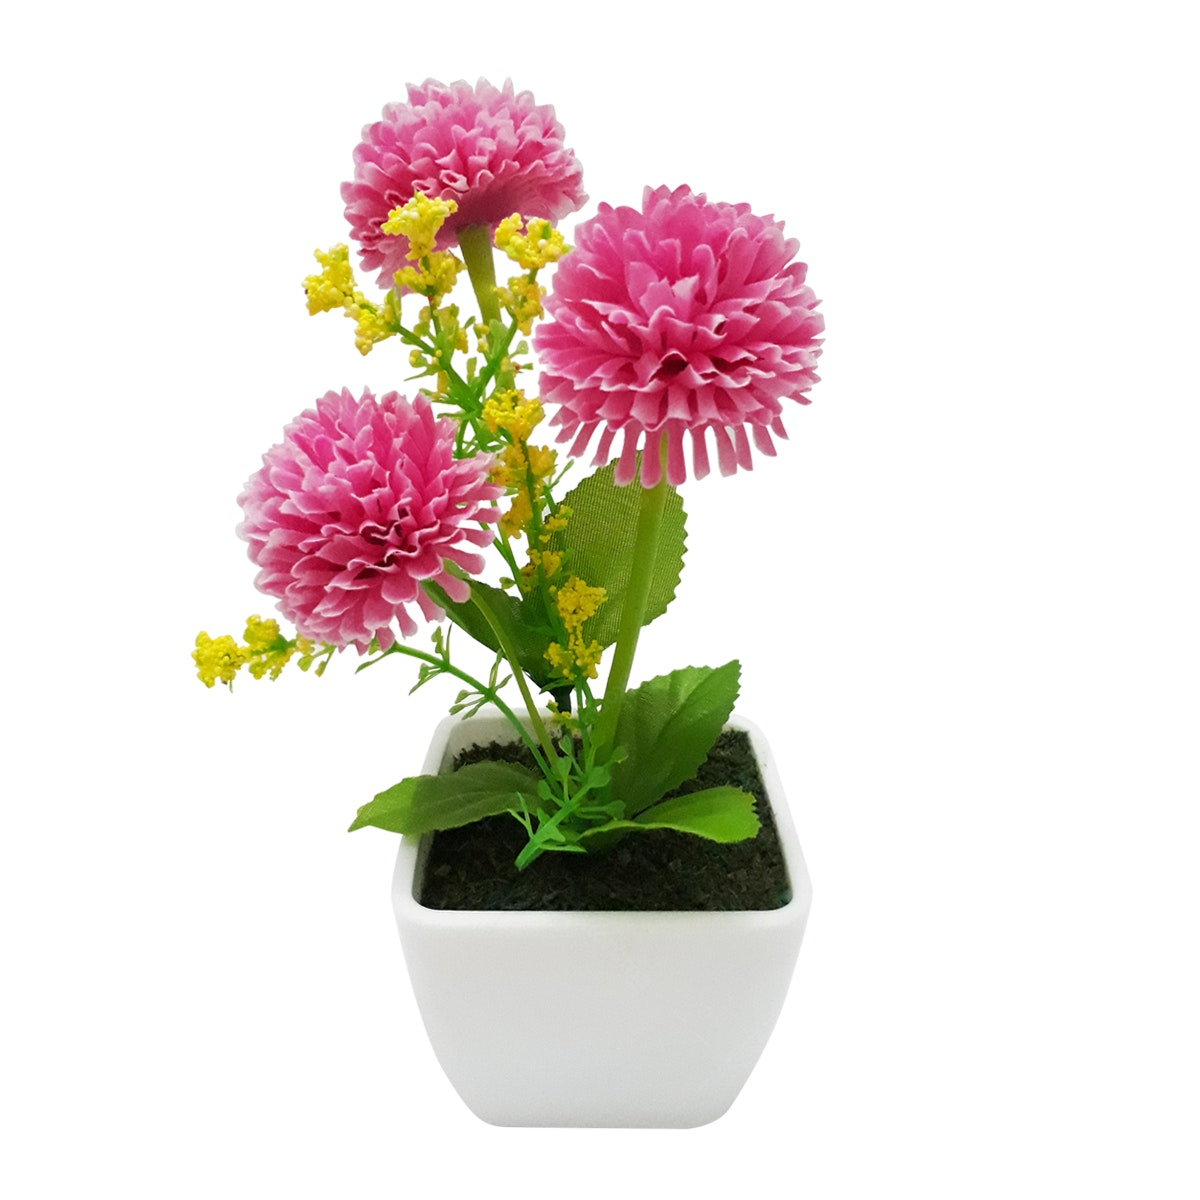 In Bloom Florist Pom Pom Pink Vas Putih